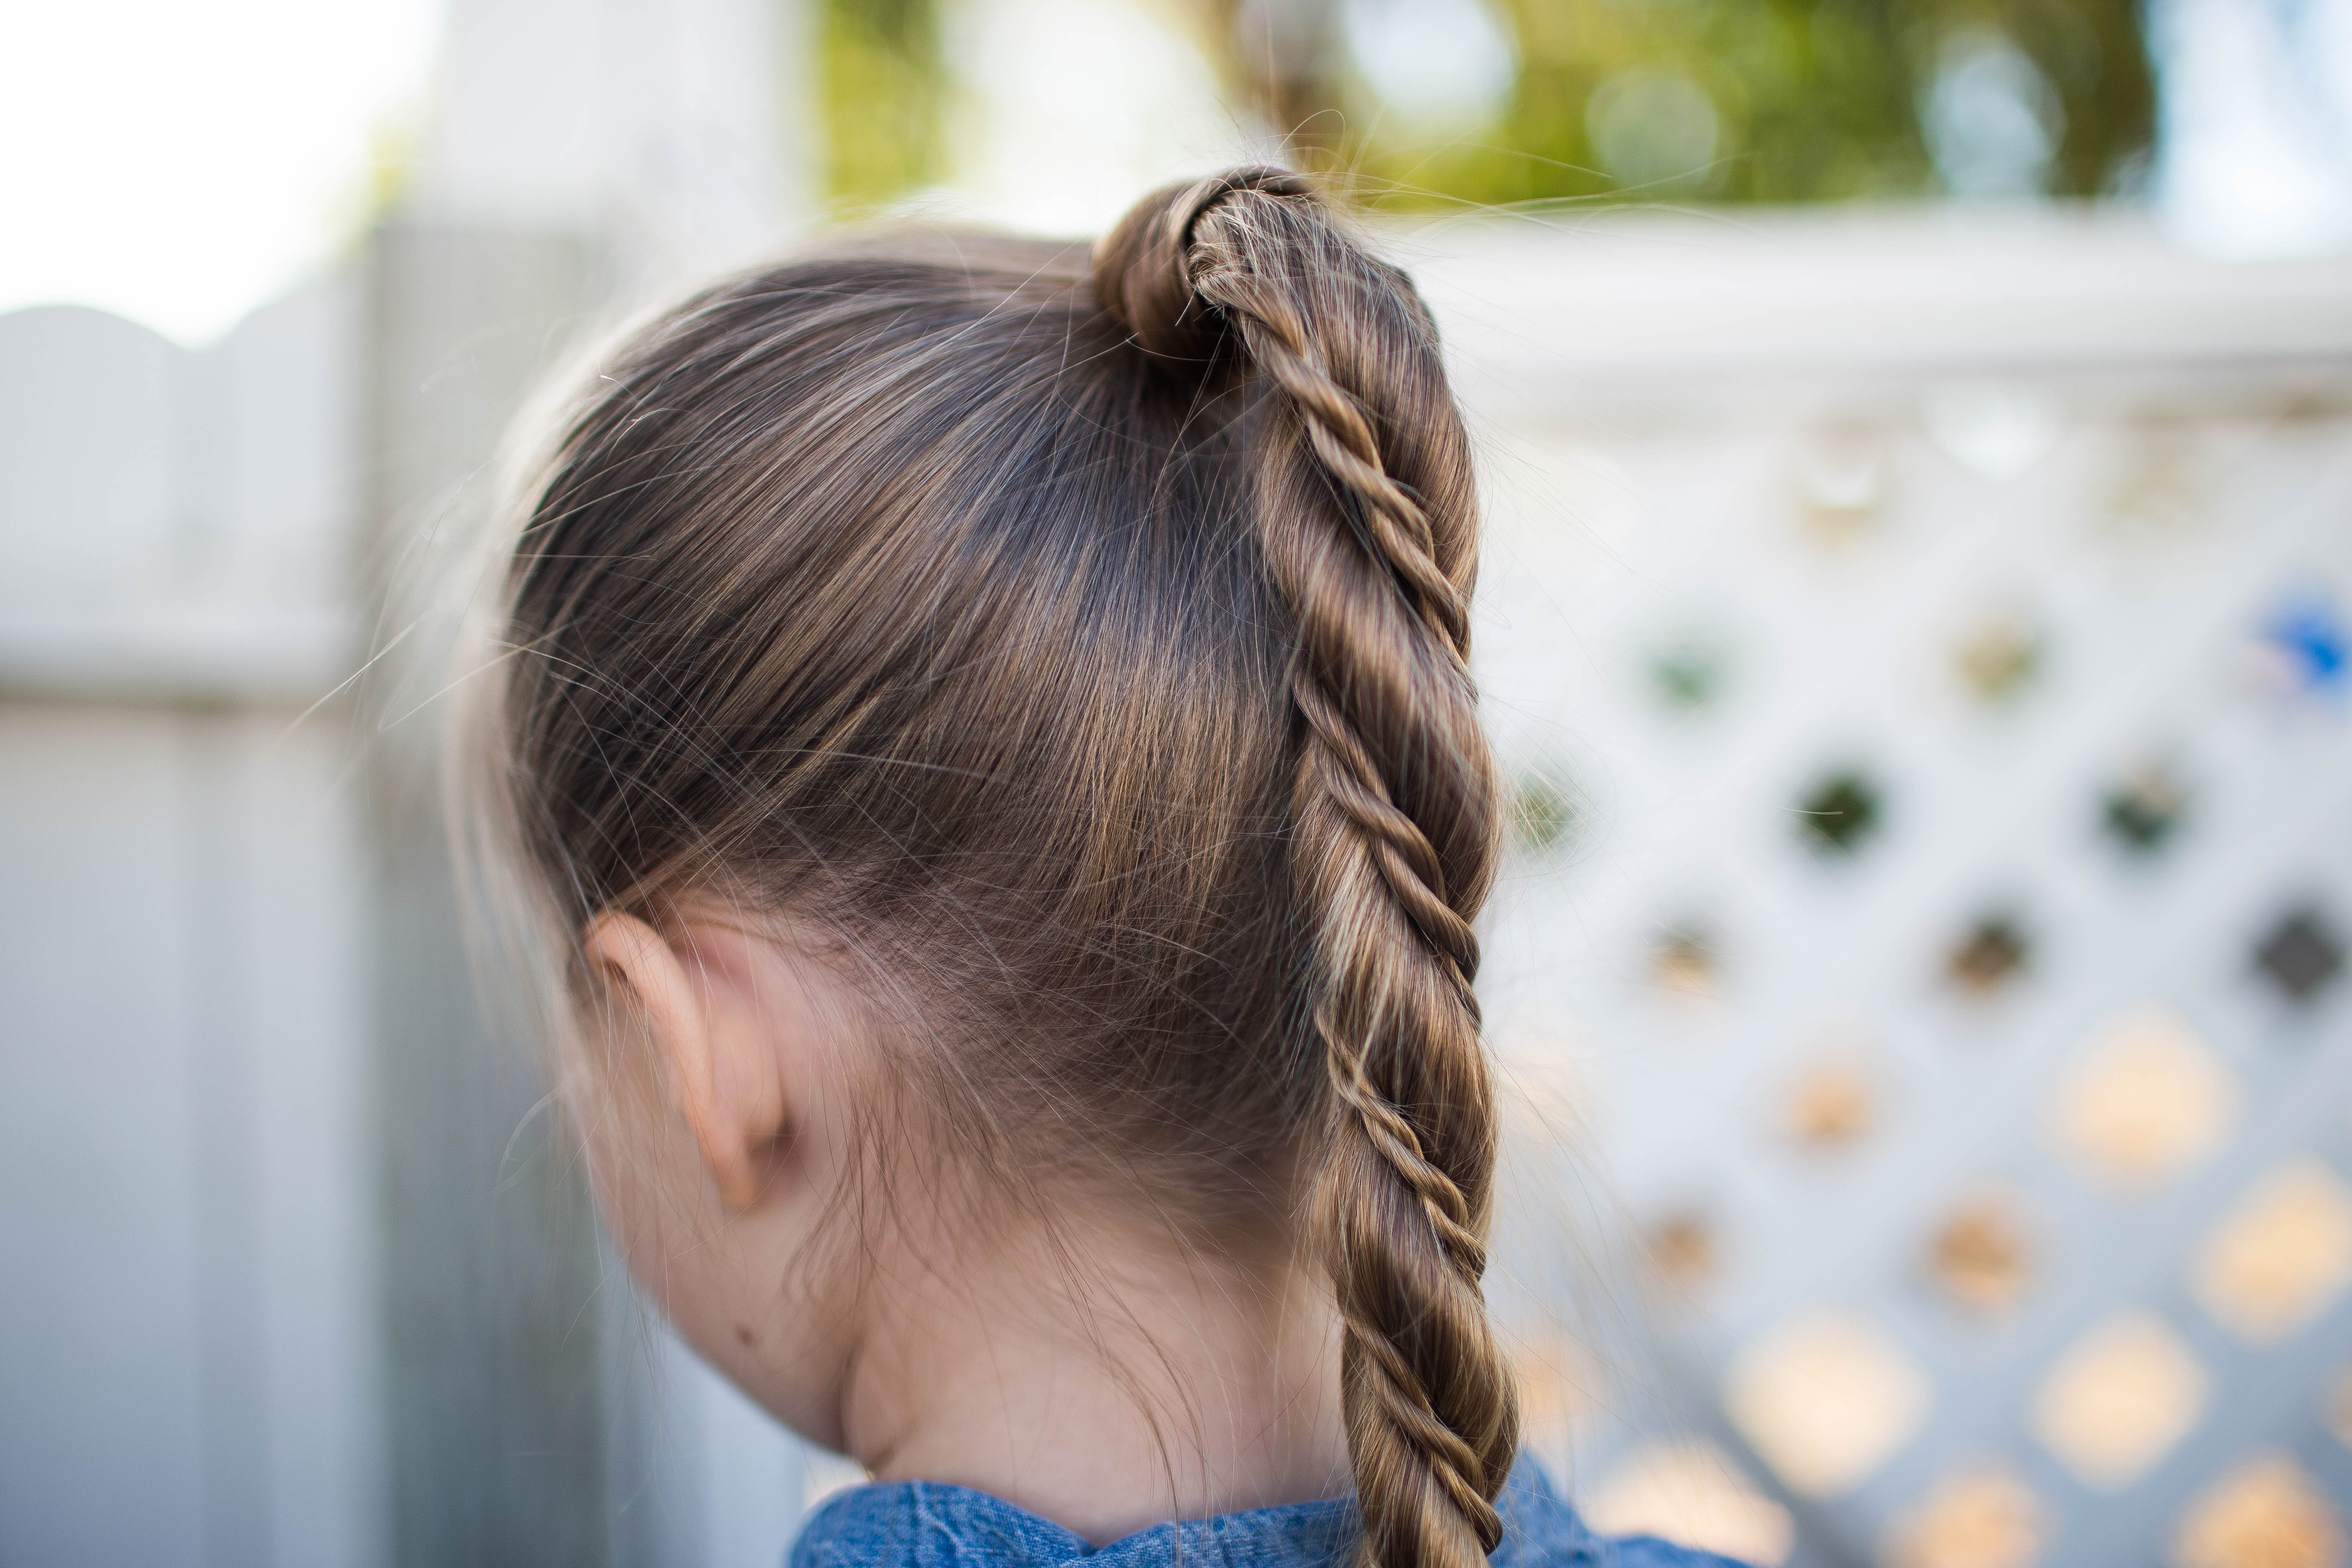 Cute Girls Hairstyles Pertaining To Most Up To Date Wrapped Ponytail Braid Hairstyles (View 6 of 20)